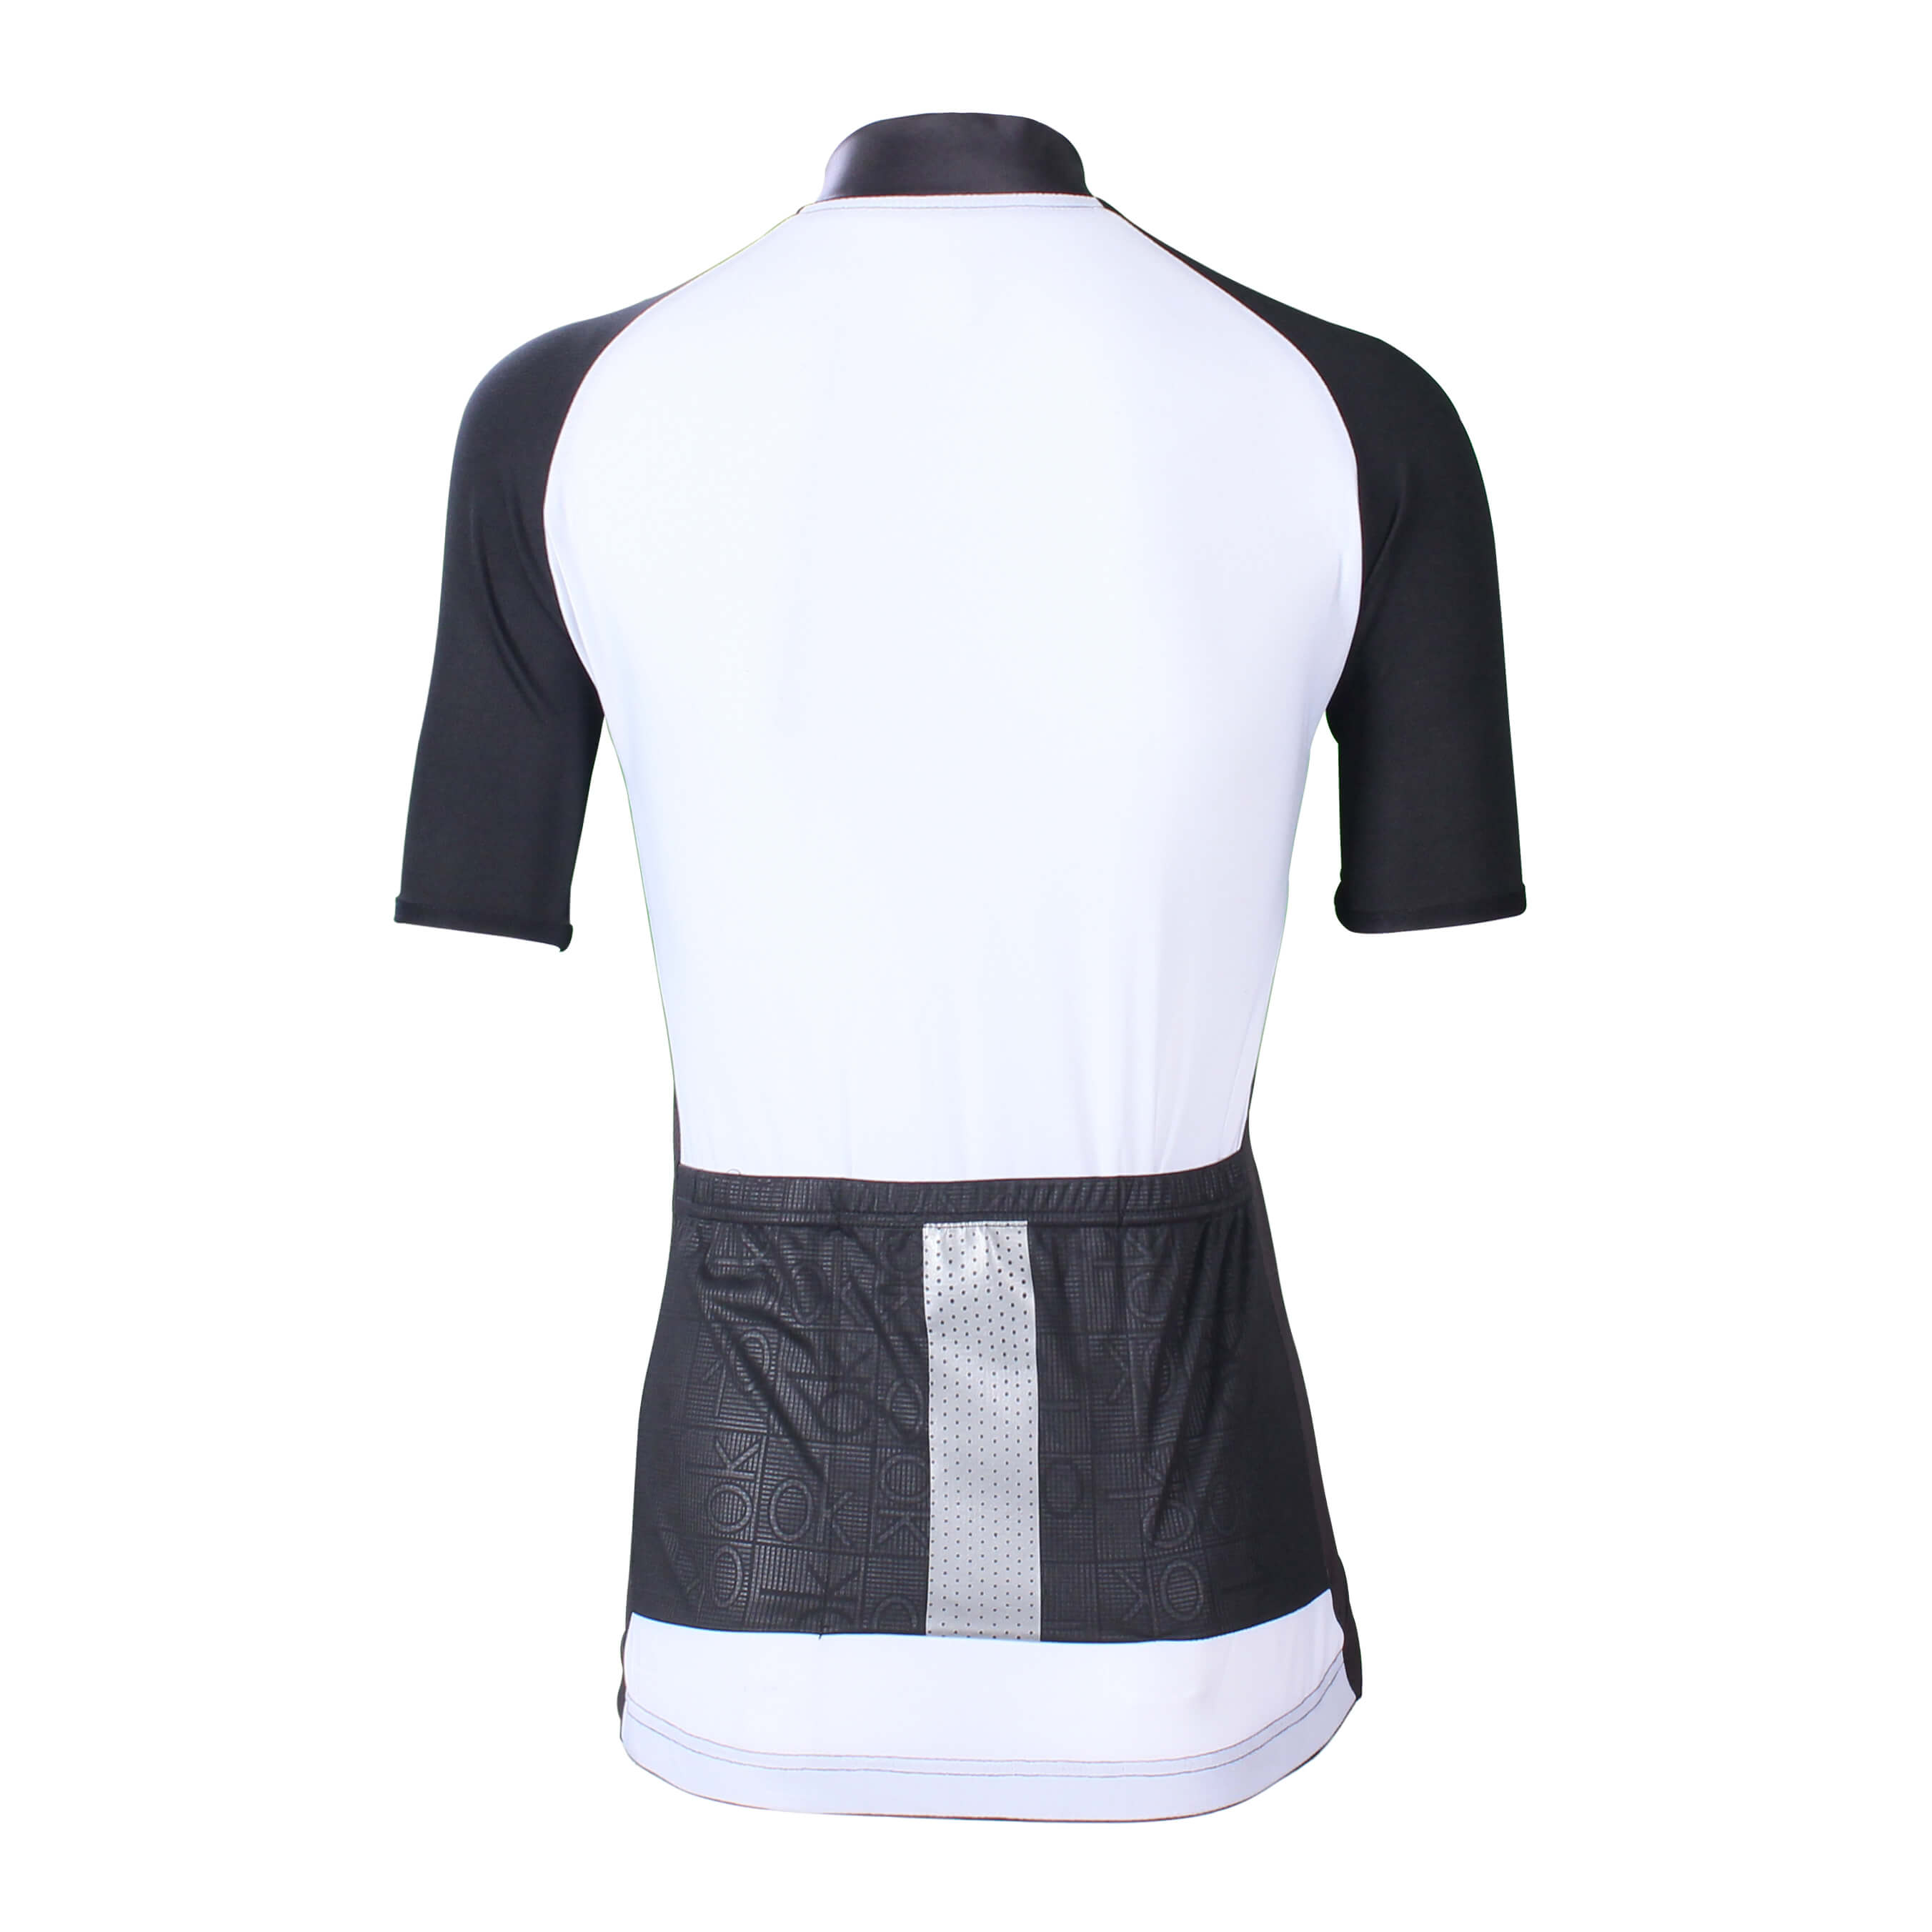 Black 4xl Black Cycling Jersey Women'S Bike Clothing